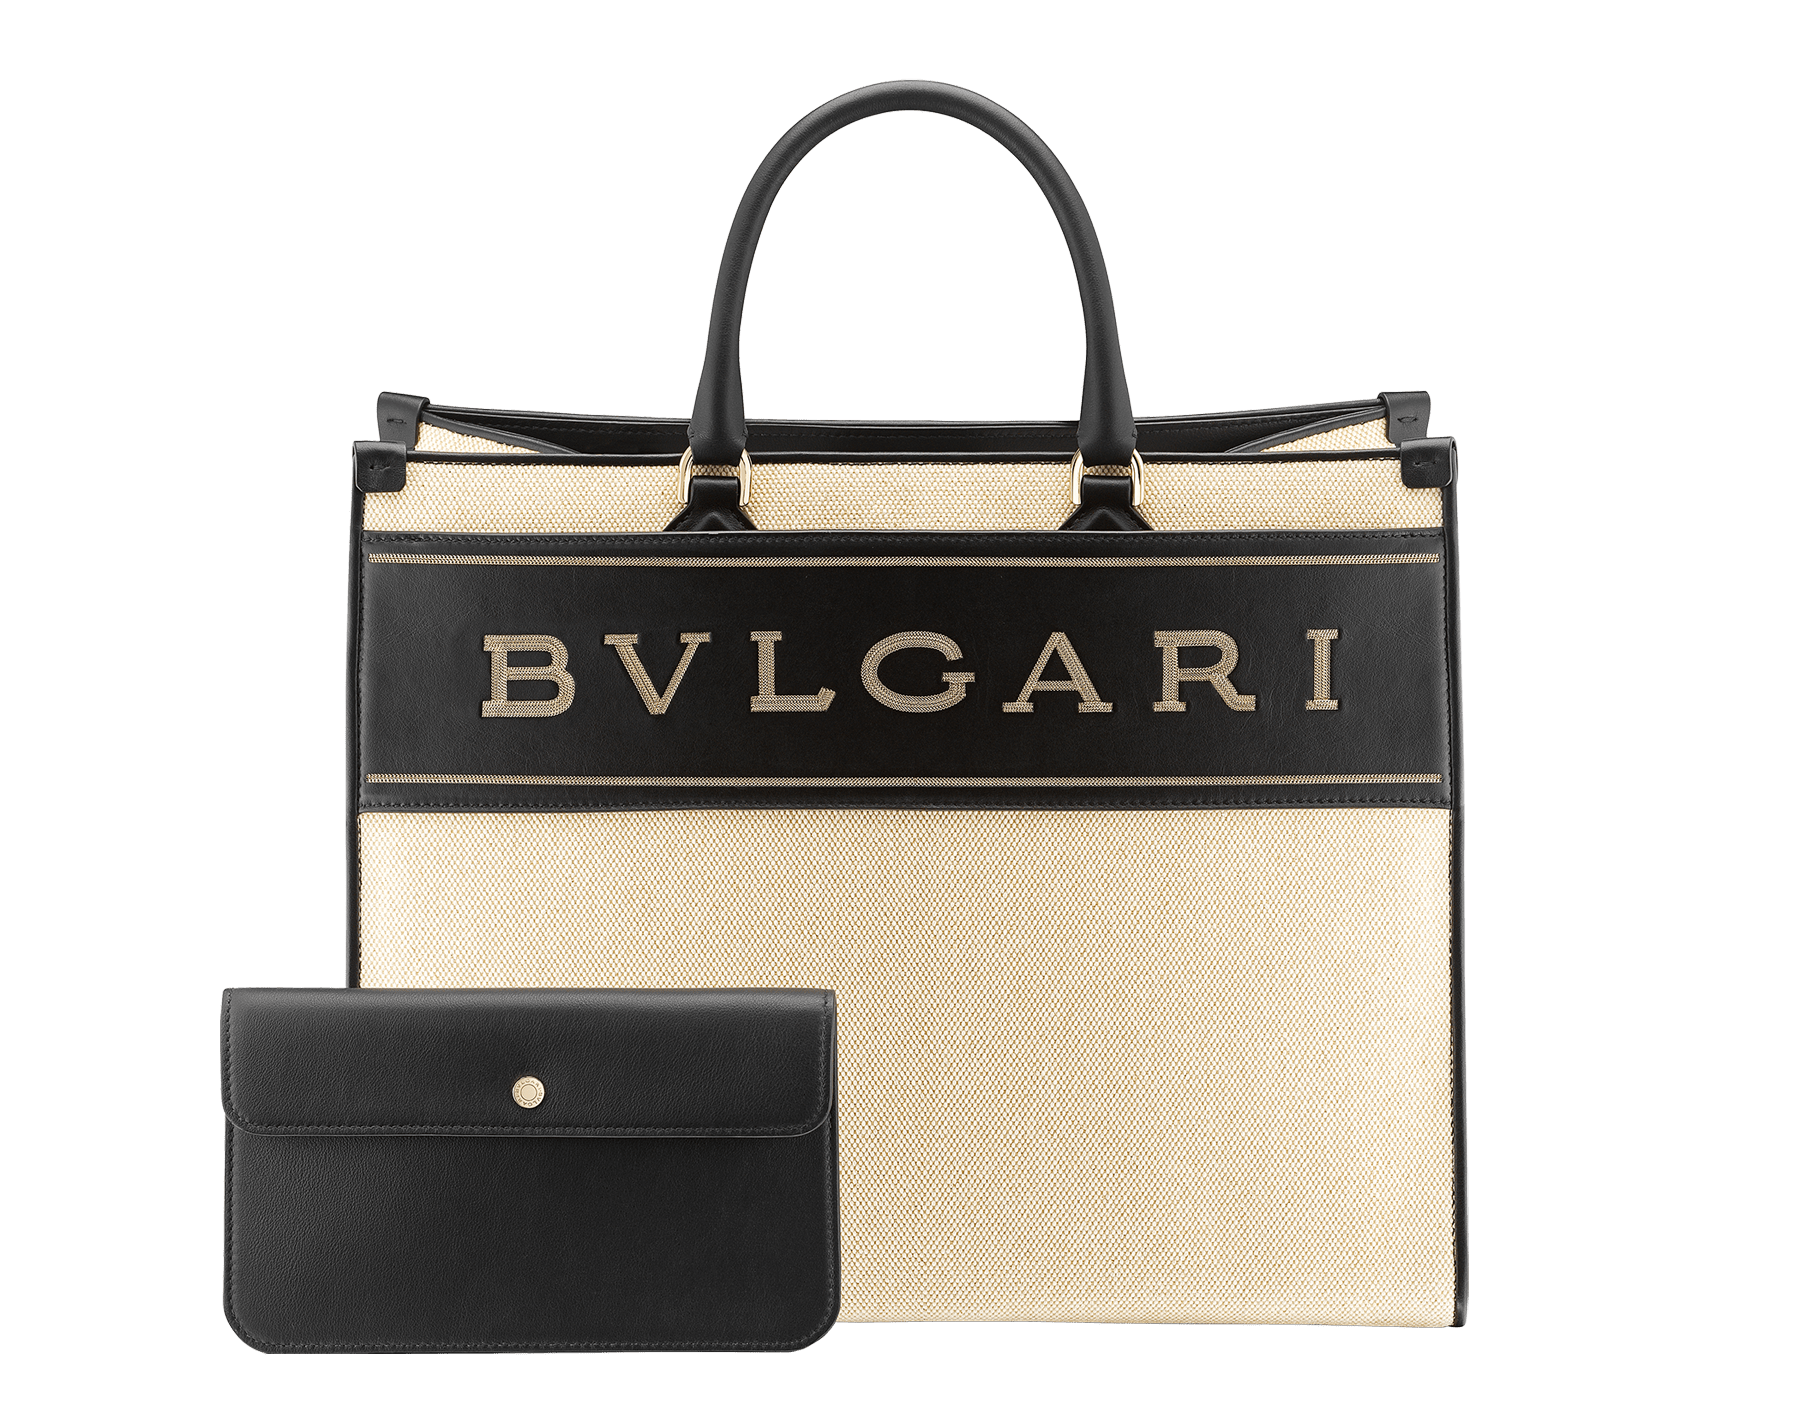 """""""Bvlgari Logo"""" large tote bag in black calf leather, with black grosgrain inner lining. Bvlgari logo featured with dark ruthenium-plated brass chain inserts on the black calf leather. BVL-1160 image 4"""